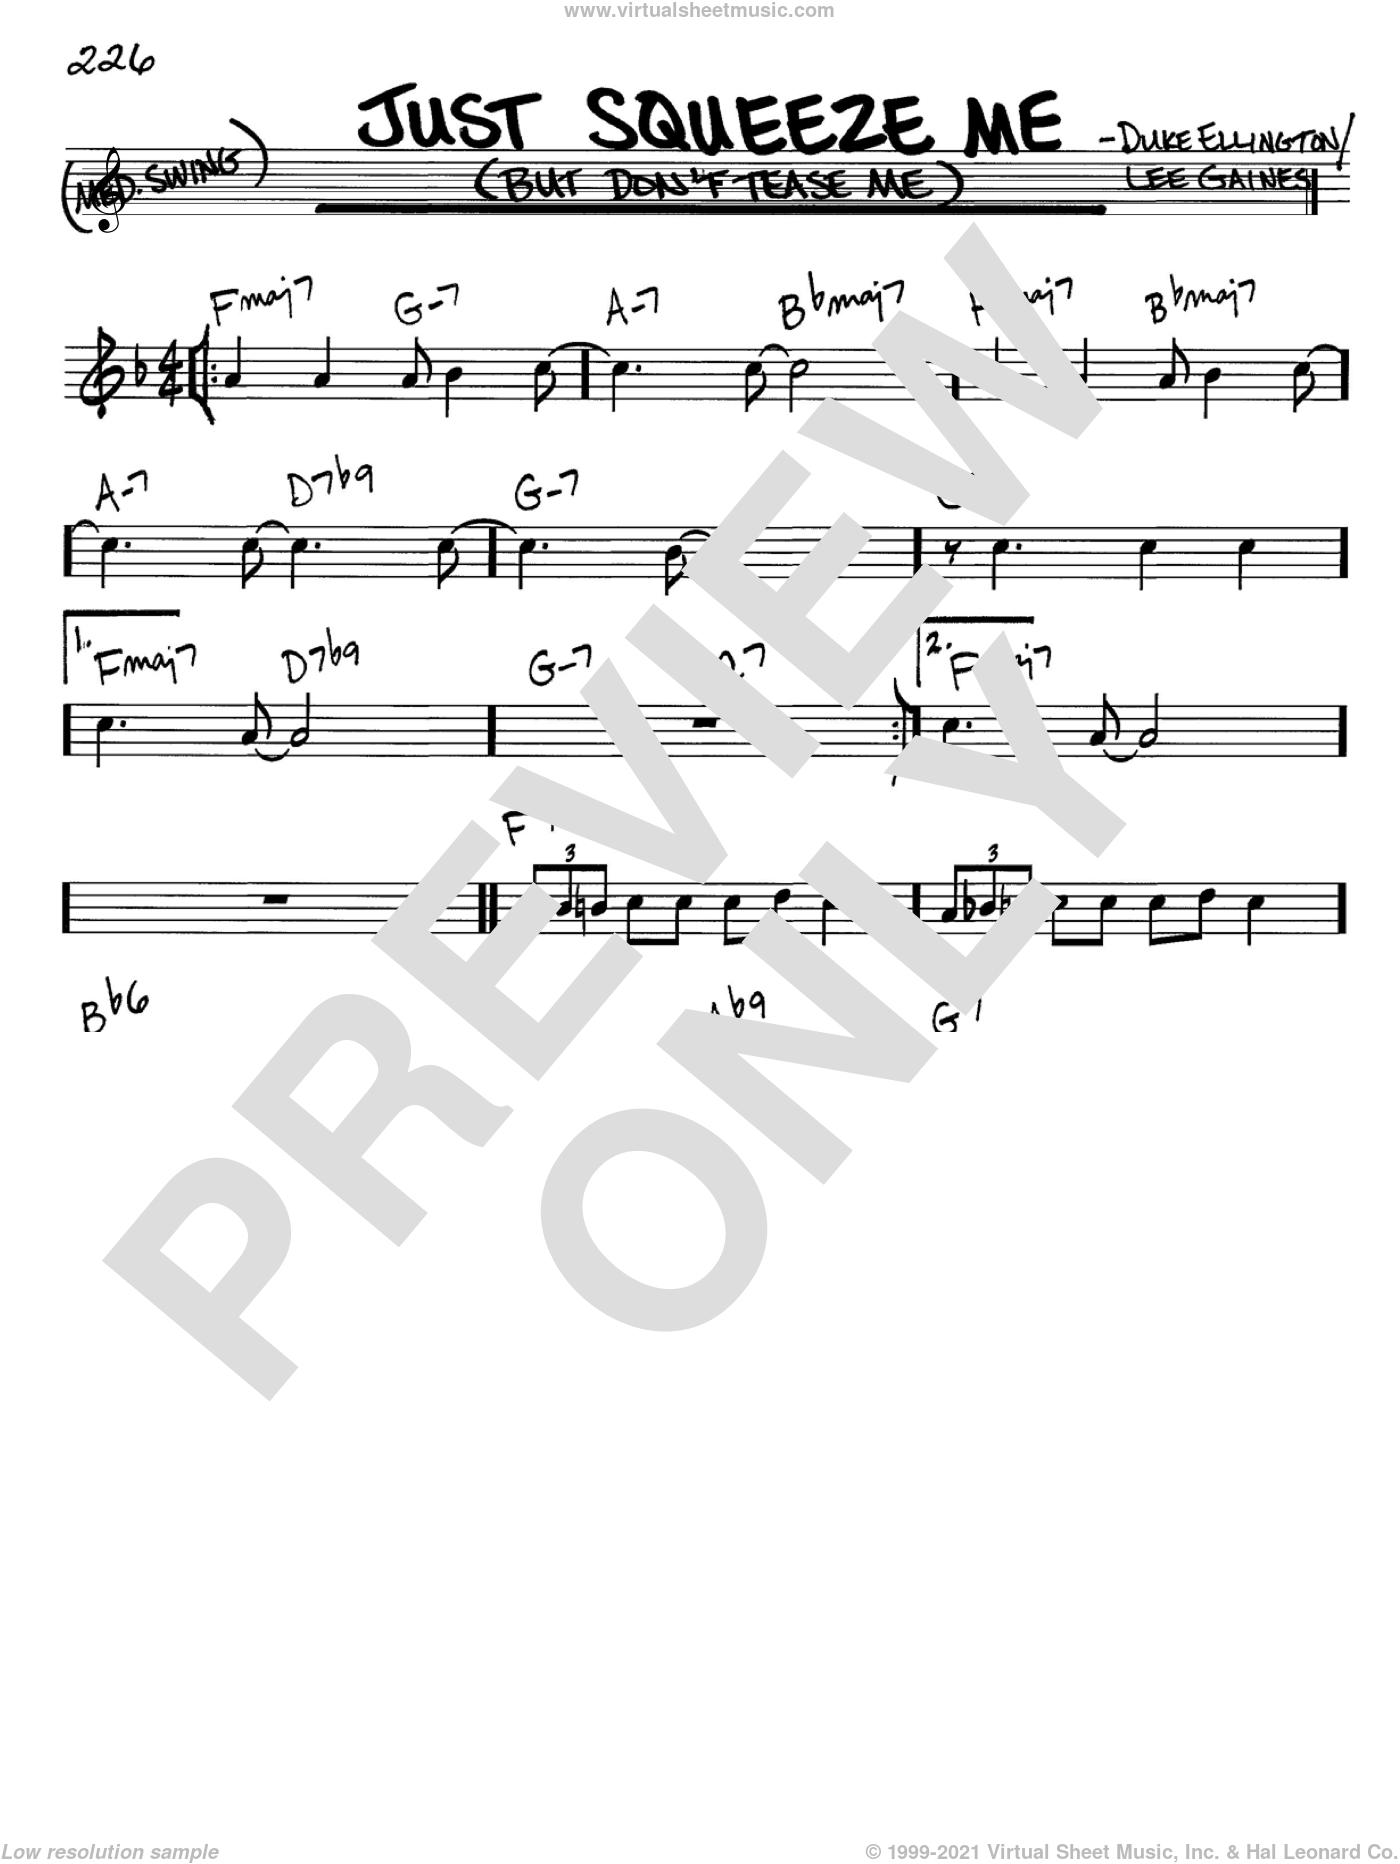 Just Squeeze Me (But Don't Tease Me) sheet music for voice and other instruments (C) by Lee Gaines and Duke Ellington. Score Image Preview.